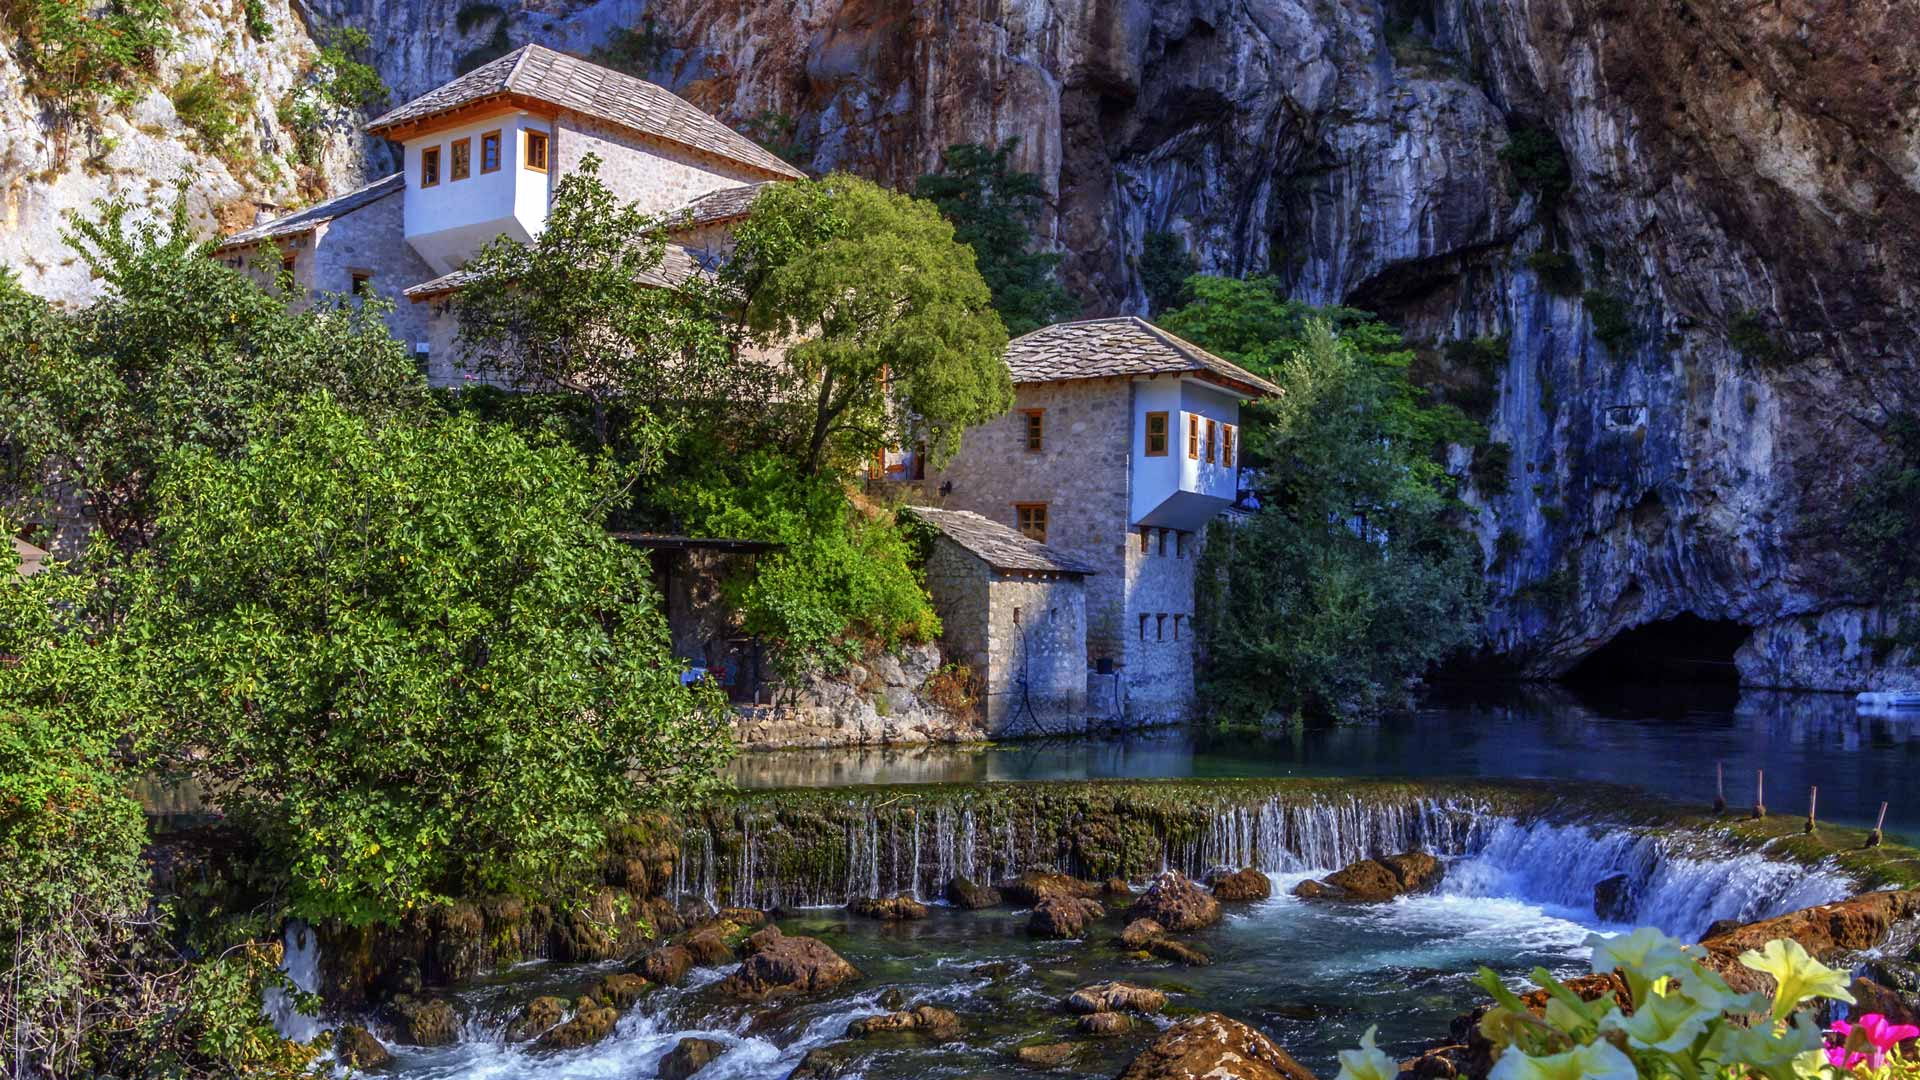 Small village Blagaj on Buna waterfall by day, Bosnia and Herzegovina